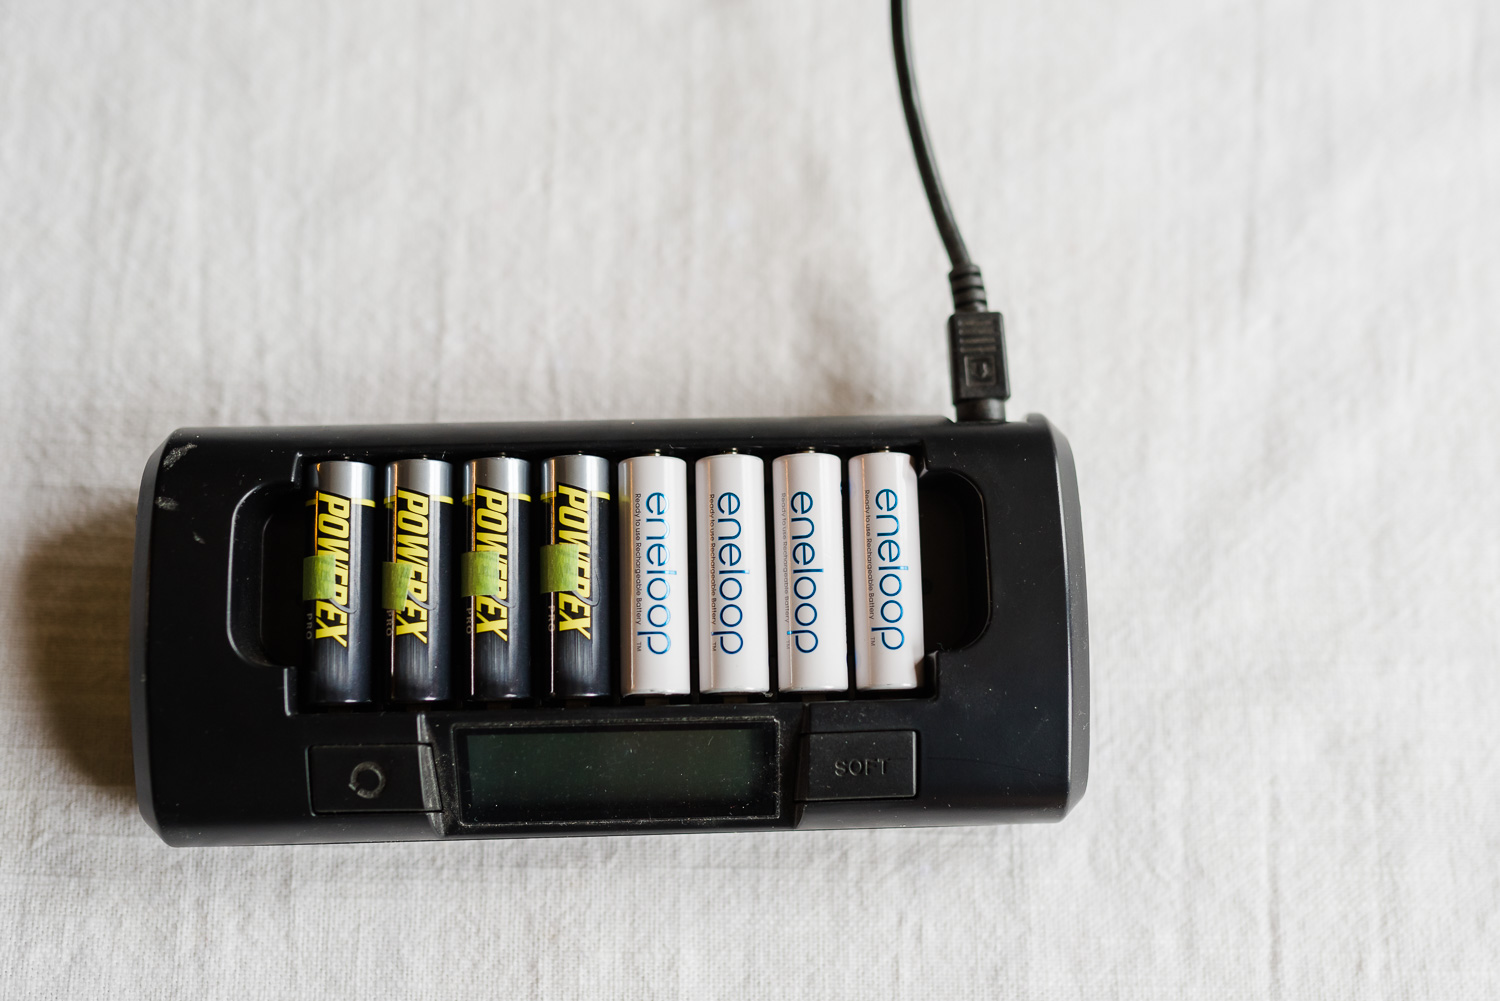 maha battery charger with powerx battery\ies and eneloop batteries